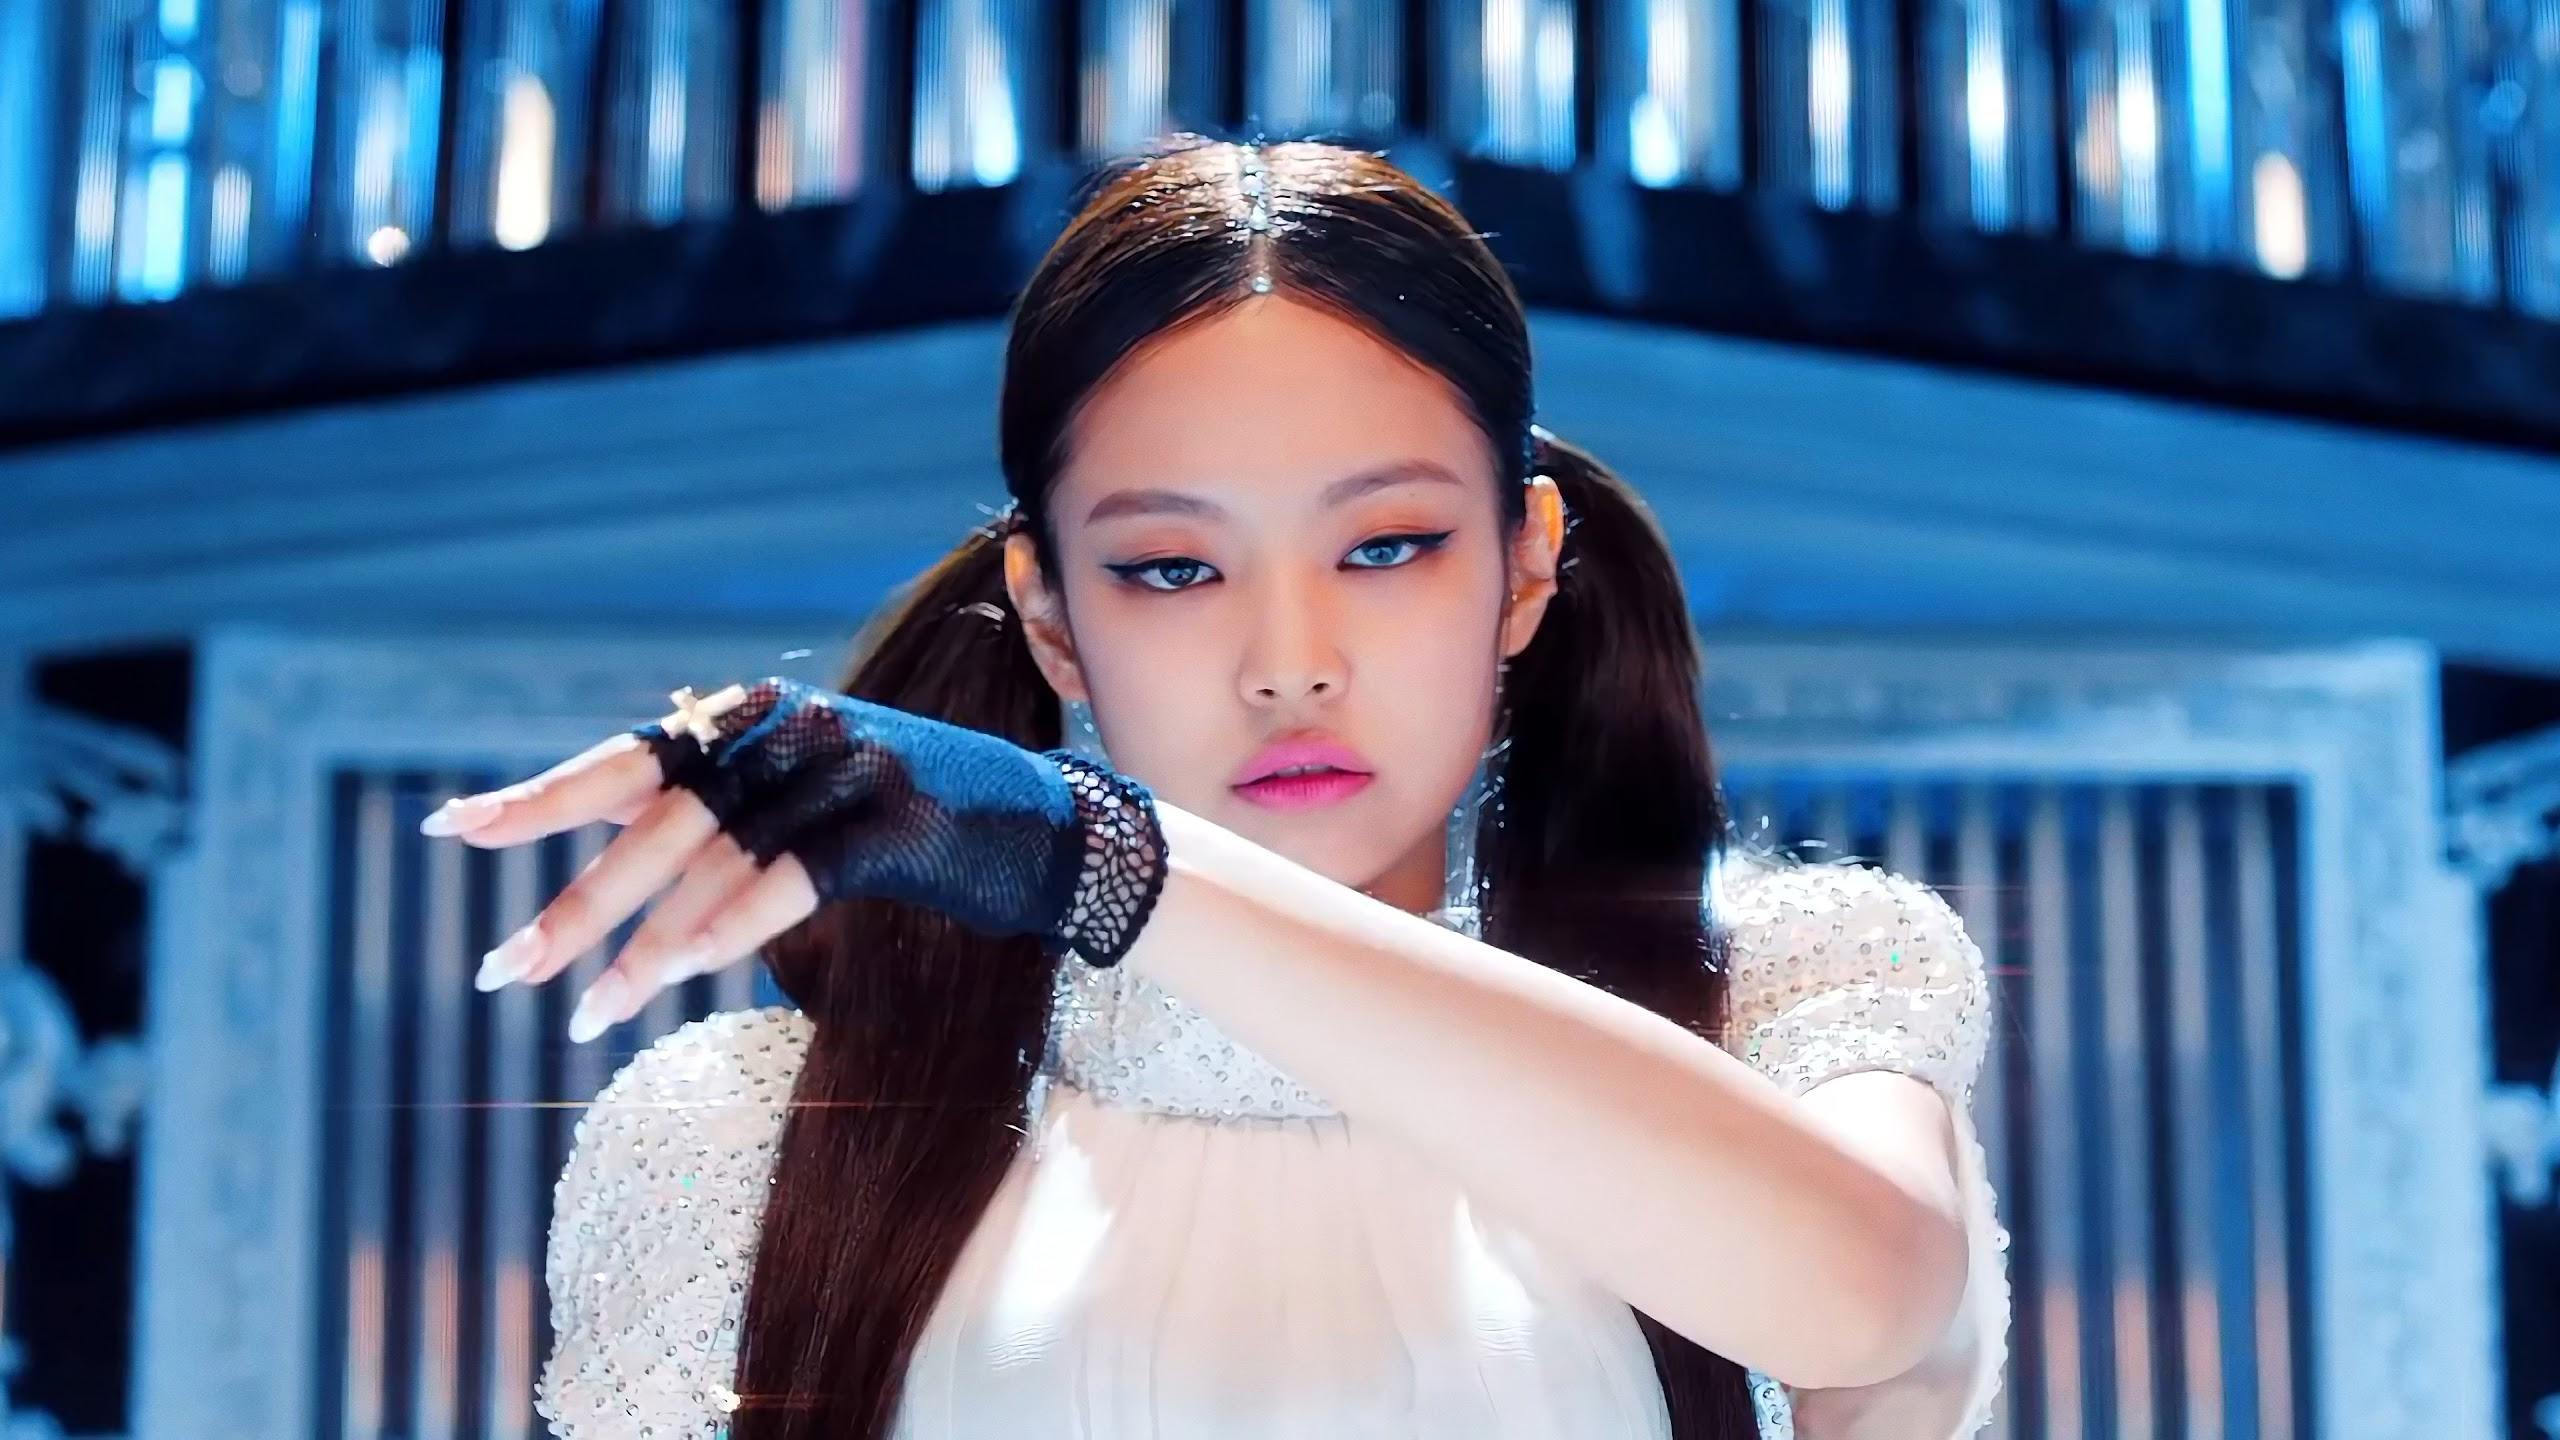 Blackpink Kill This Love Jennie 4k Wallpaper 16